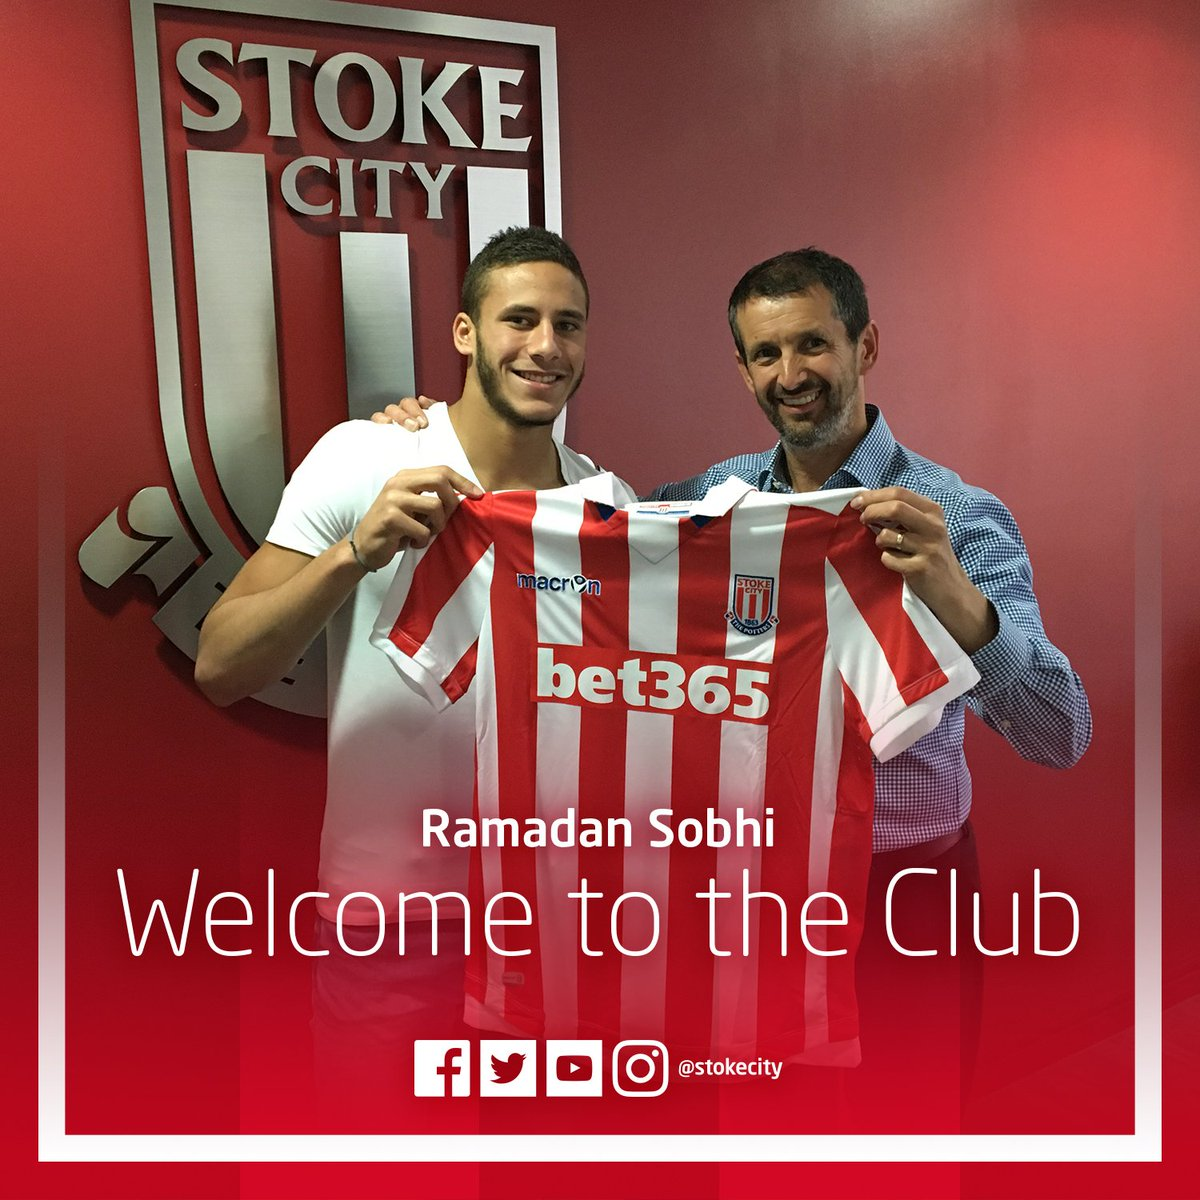 BREAKING | Stoke City are delighted to announce the signing of @RamadanSobhi from Egyptian Champions @AlAhly #SCFC